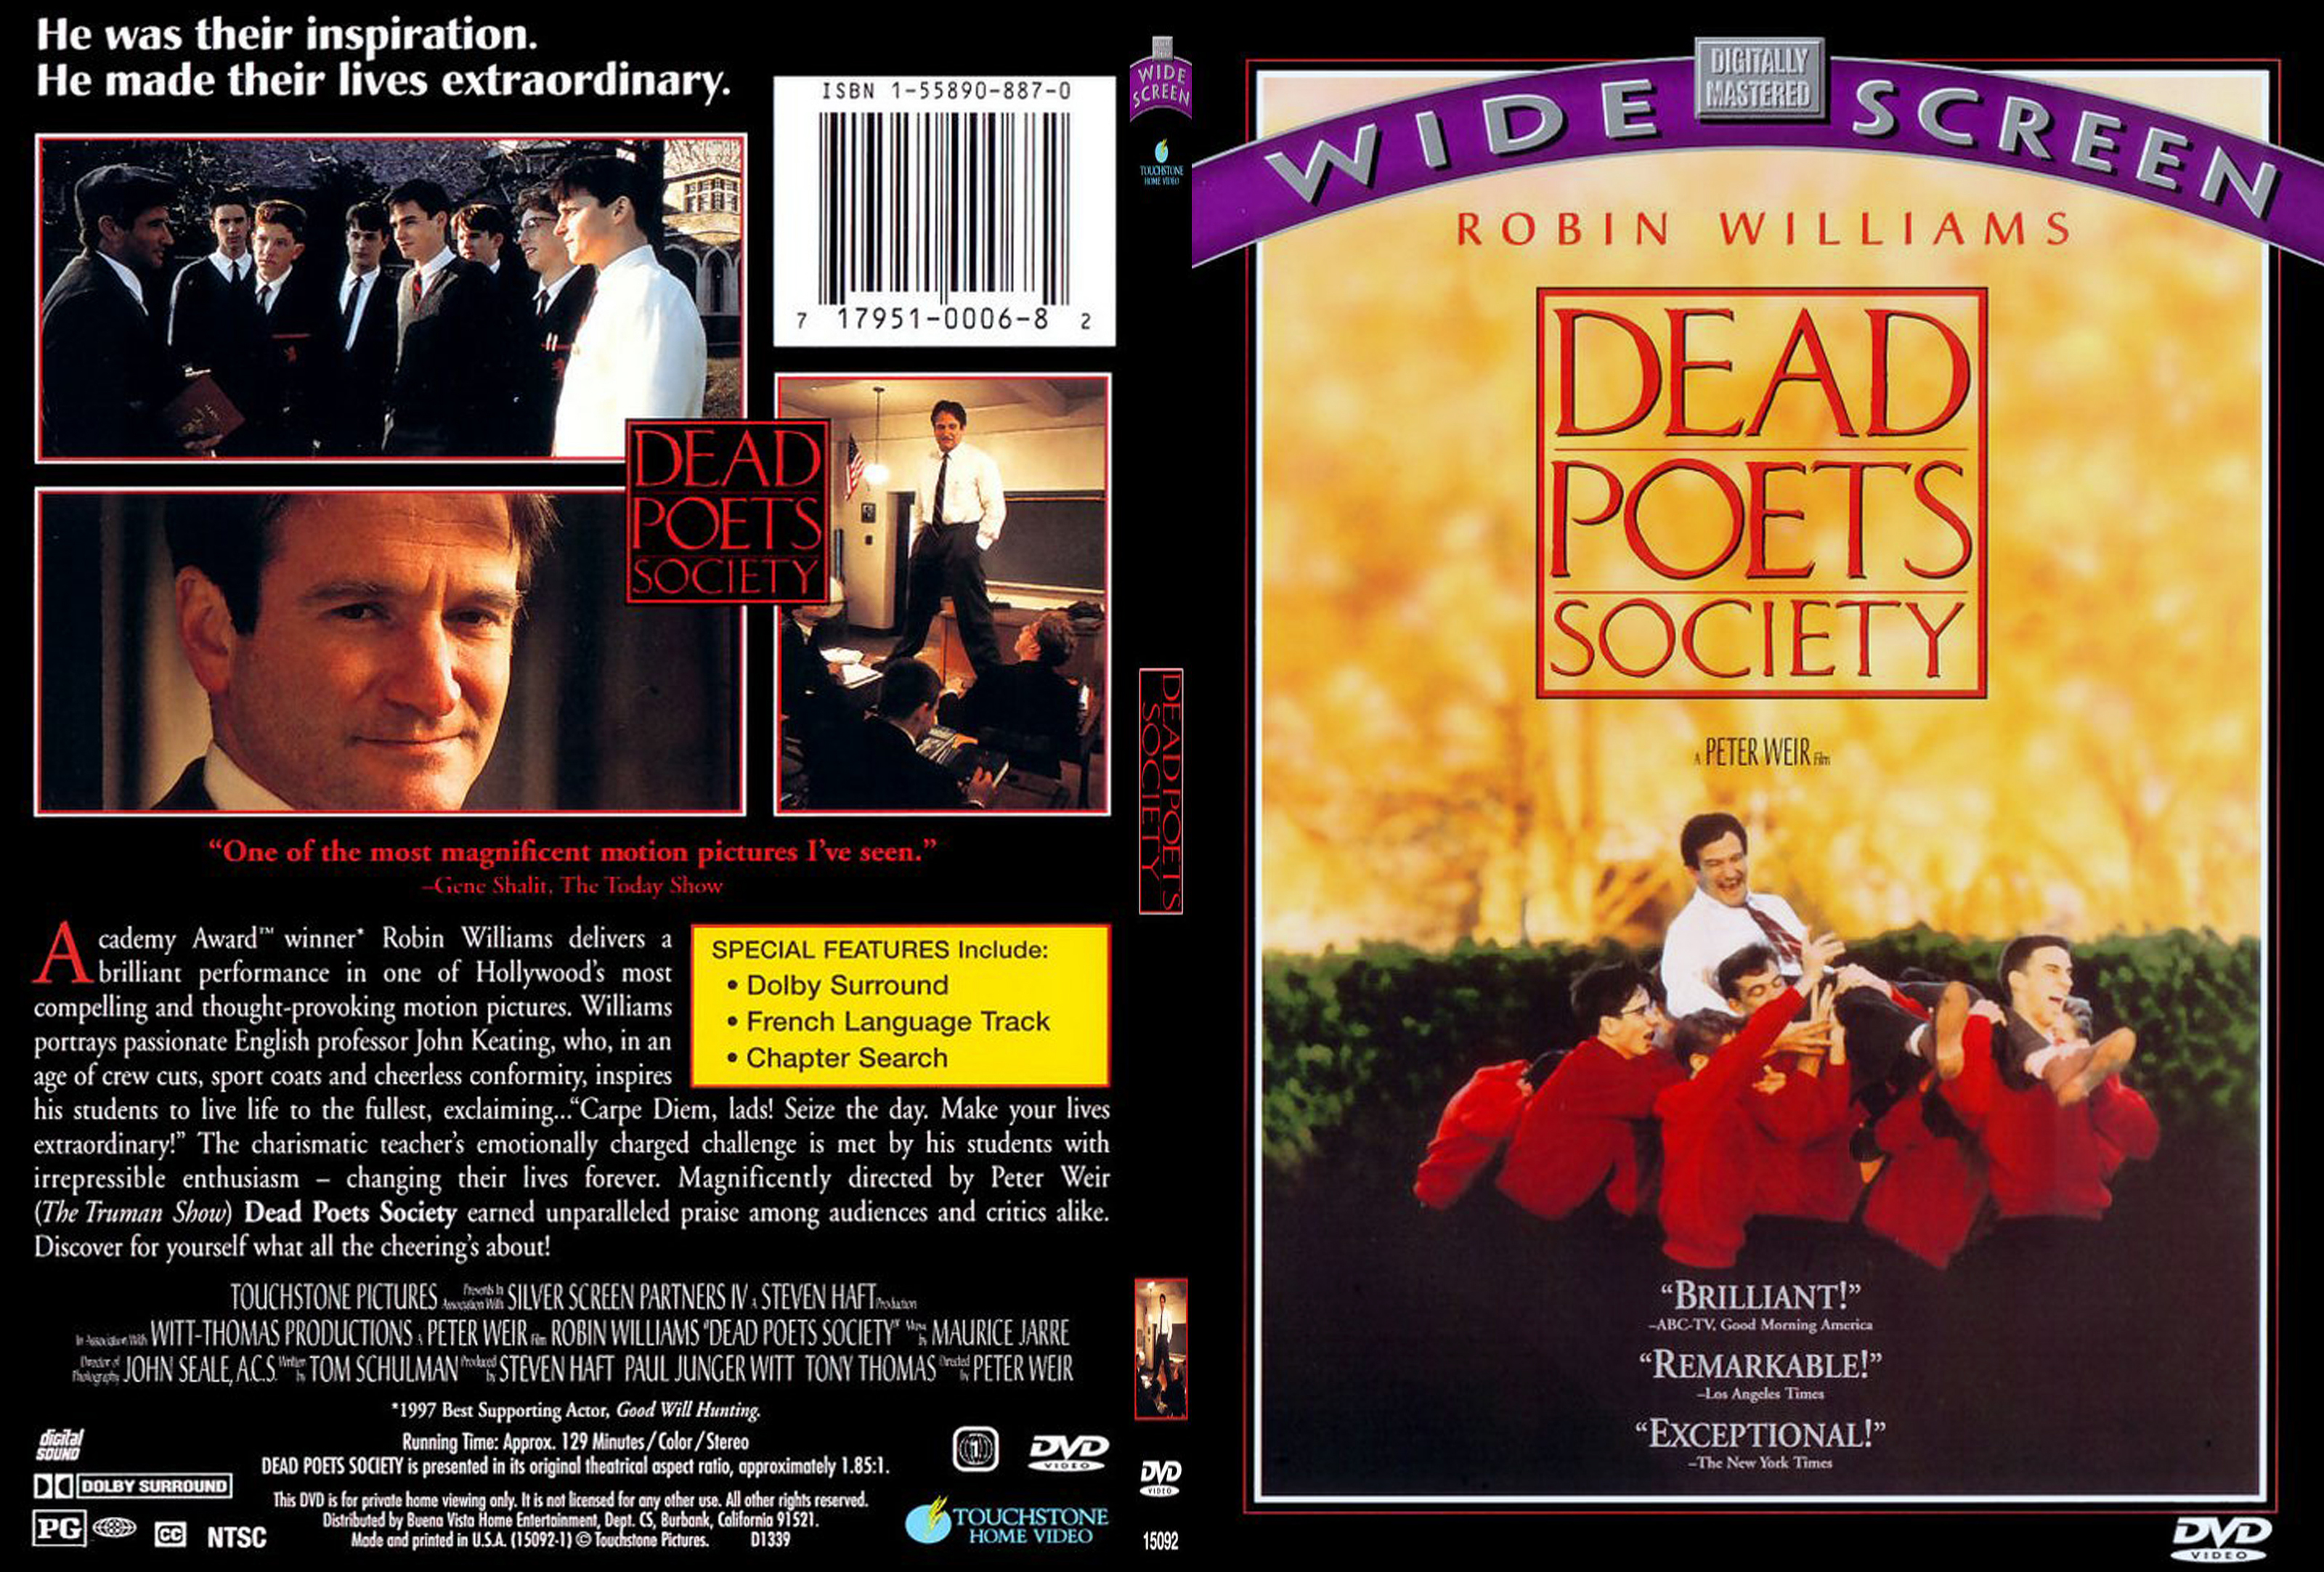 Covers Box Sk Dead Poets Society 1989 High Quality Dvd Blueray Movie